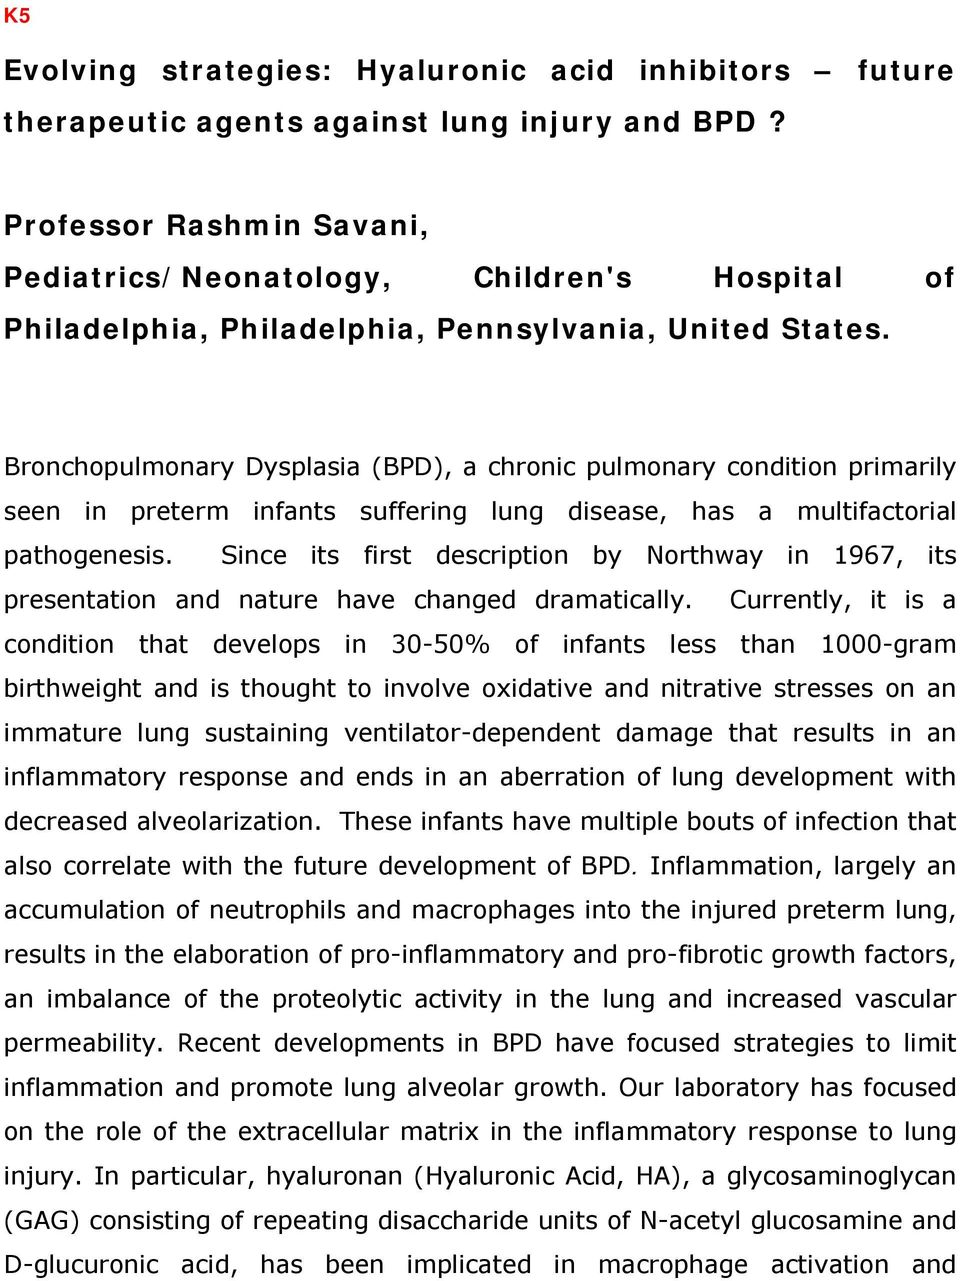 Bronchopulmonary Dysplasia (BPD), a chronic pulmonary condition primarily seen in preterm infants suffering lung disease, has a multifactorial pathogenesis.